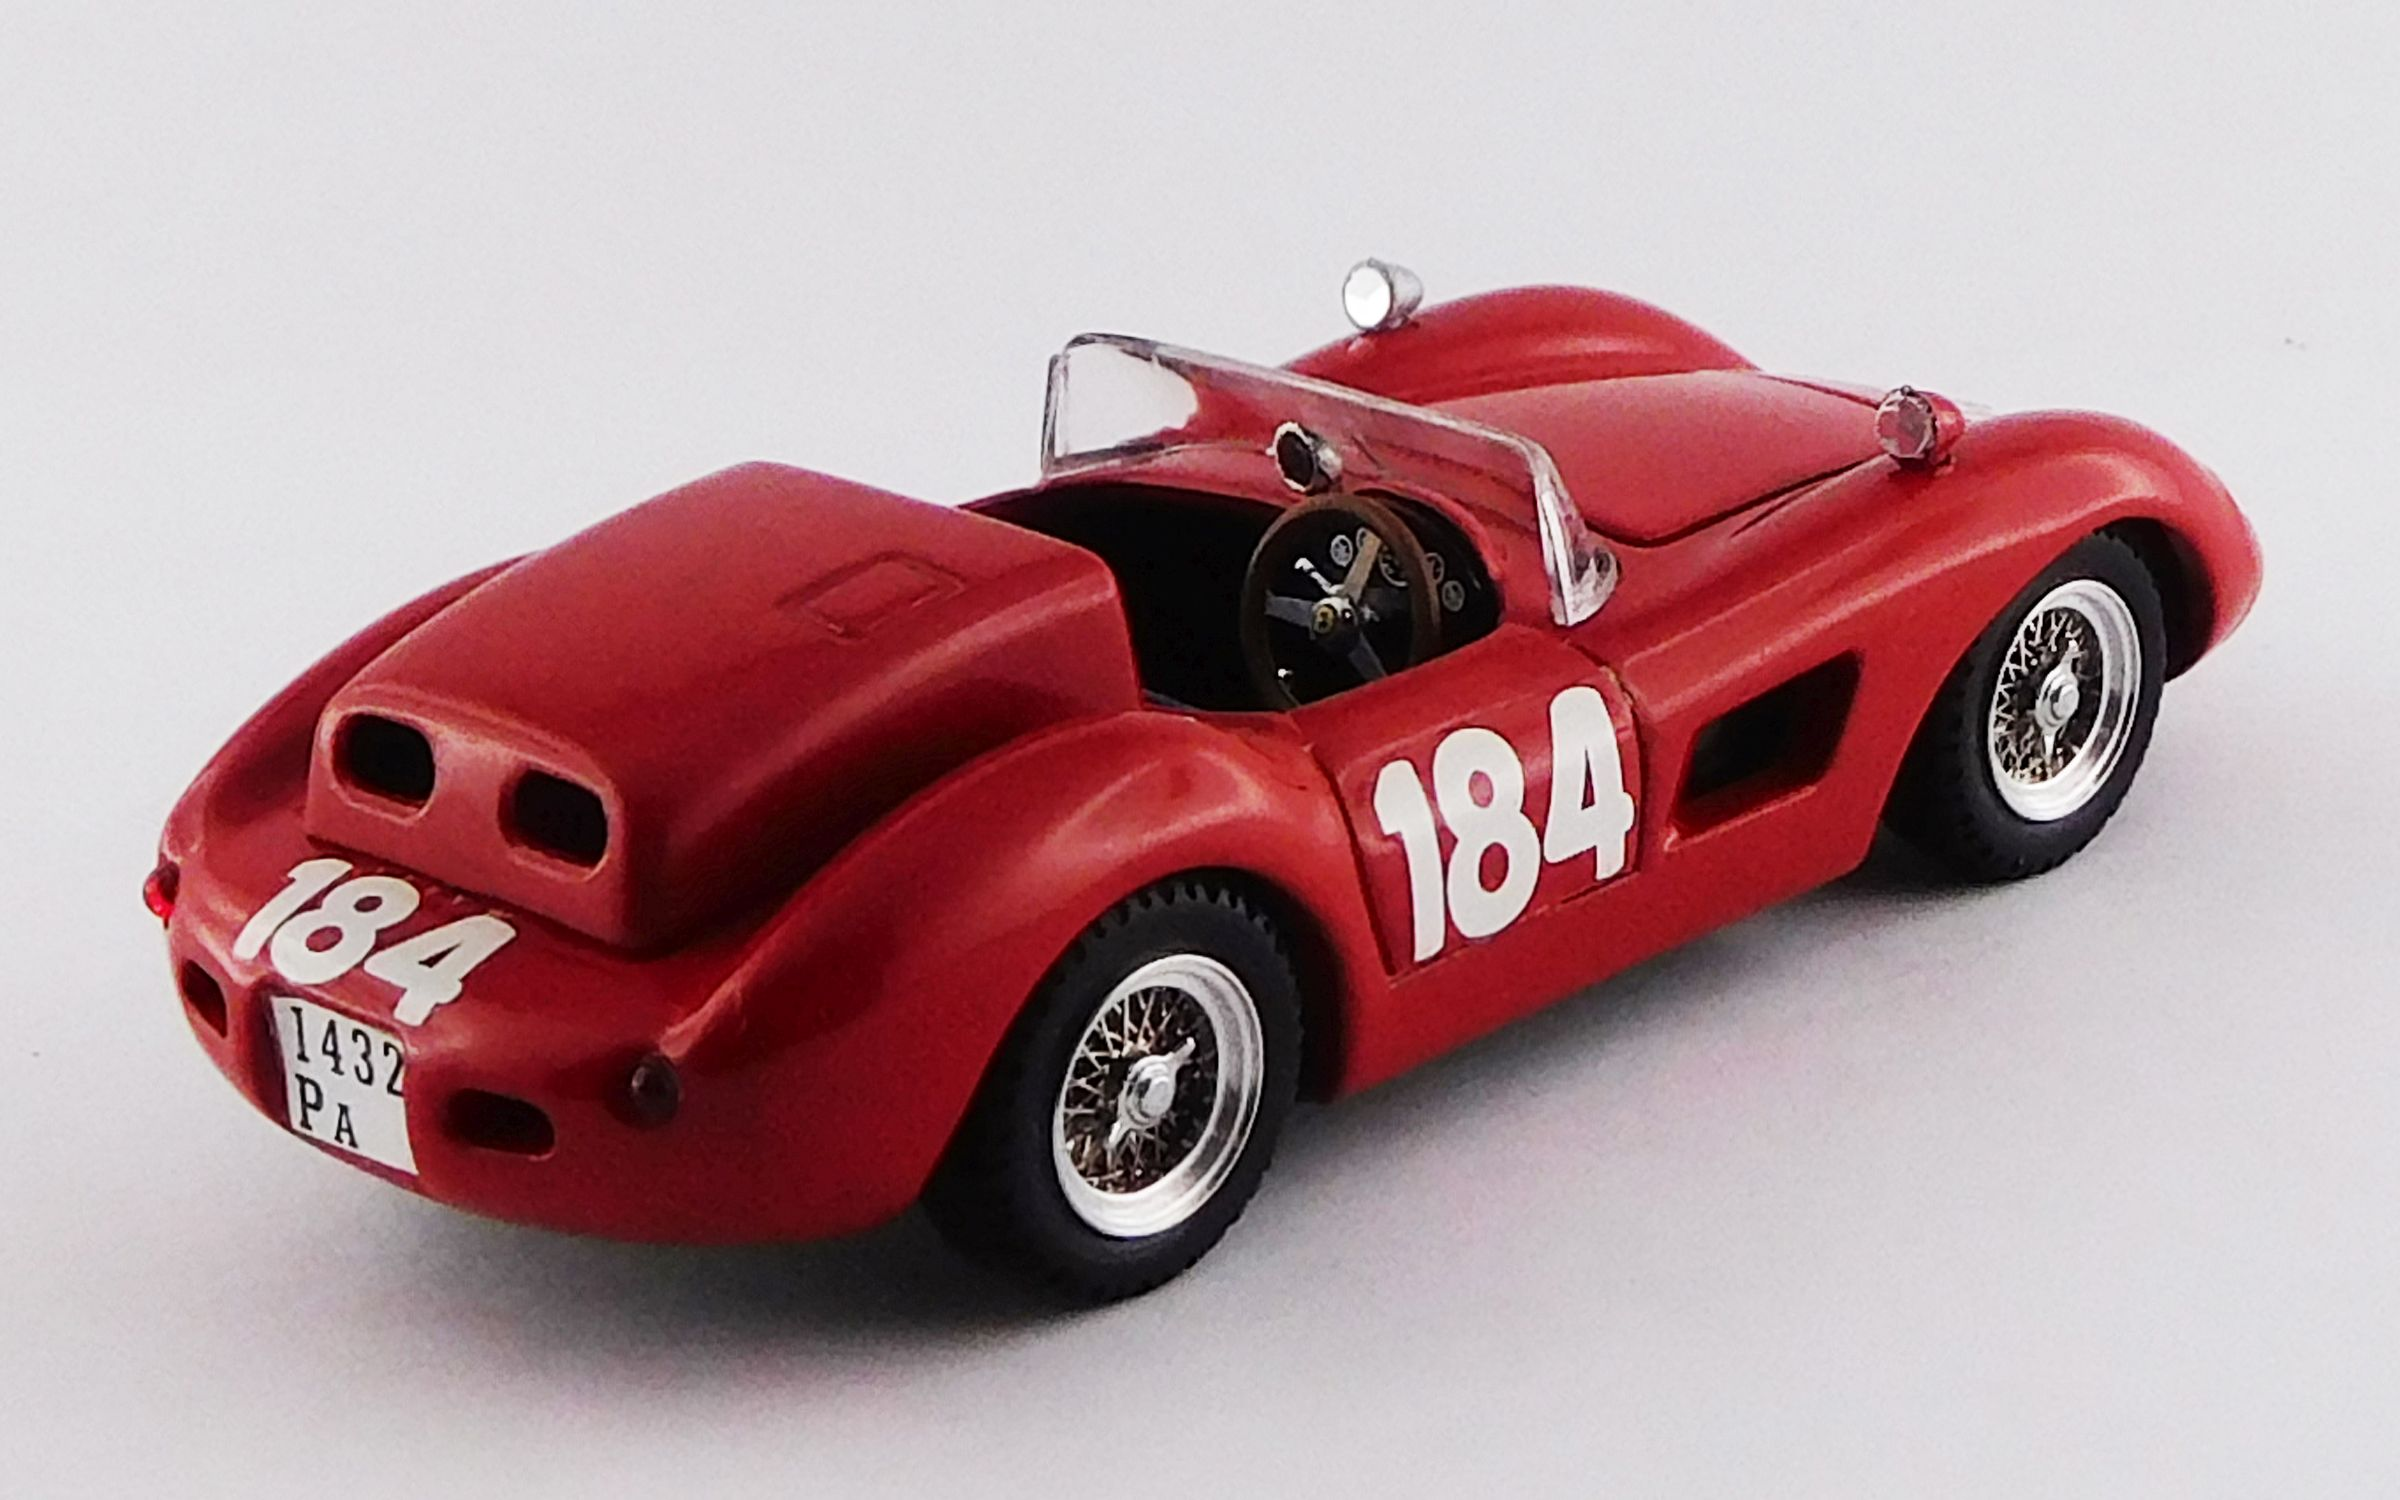 News From The Continent M4 Modelcars 6 7 17 Mar Online